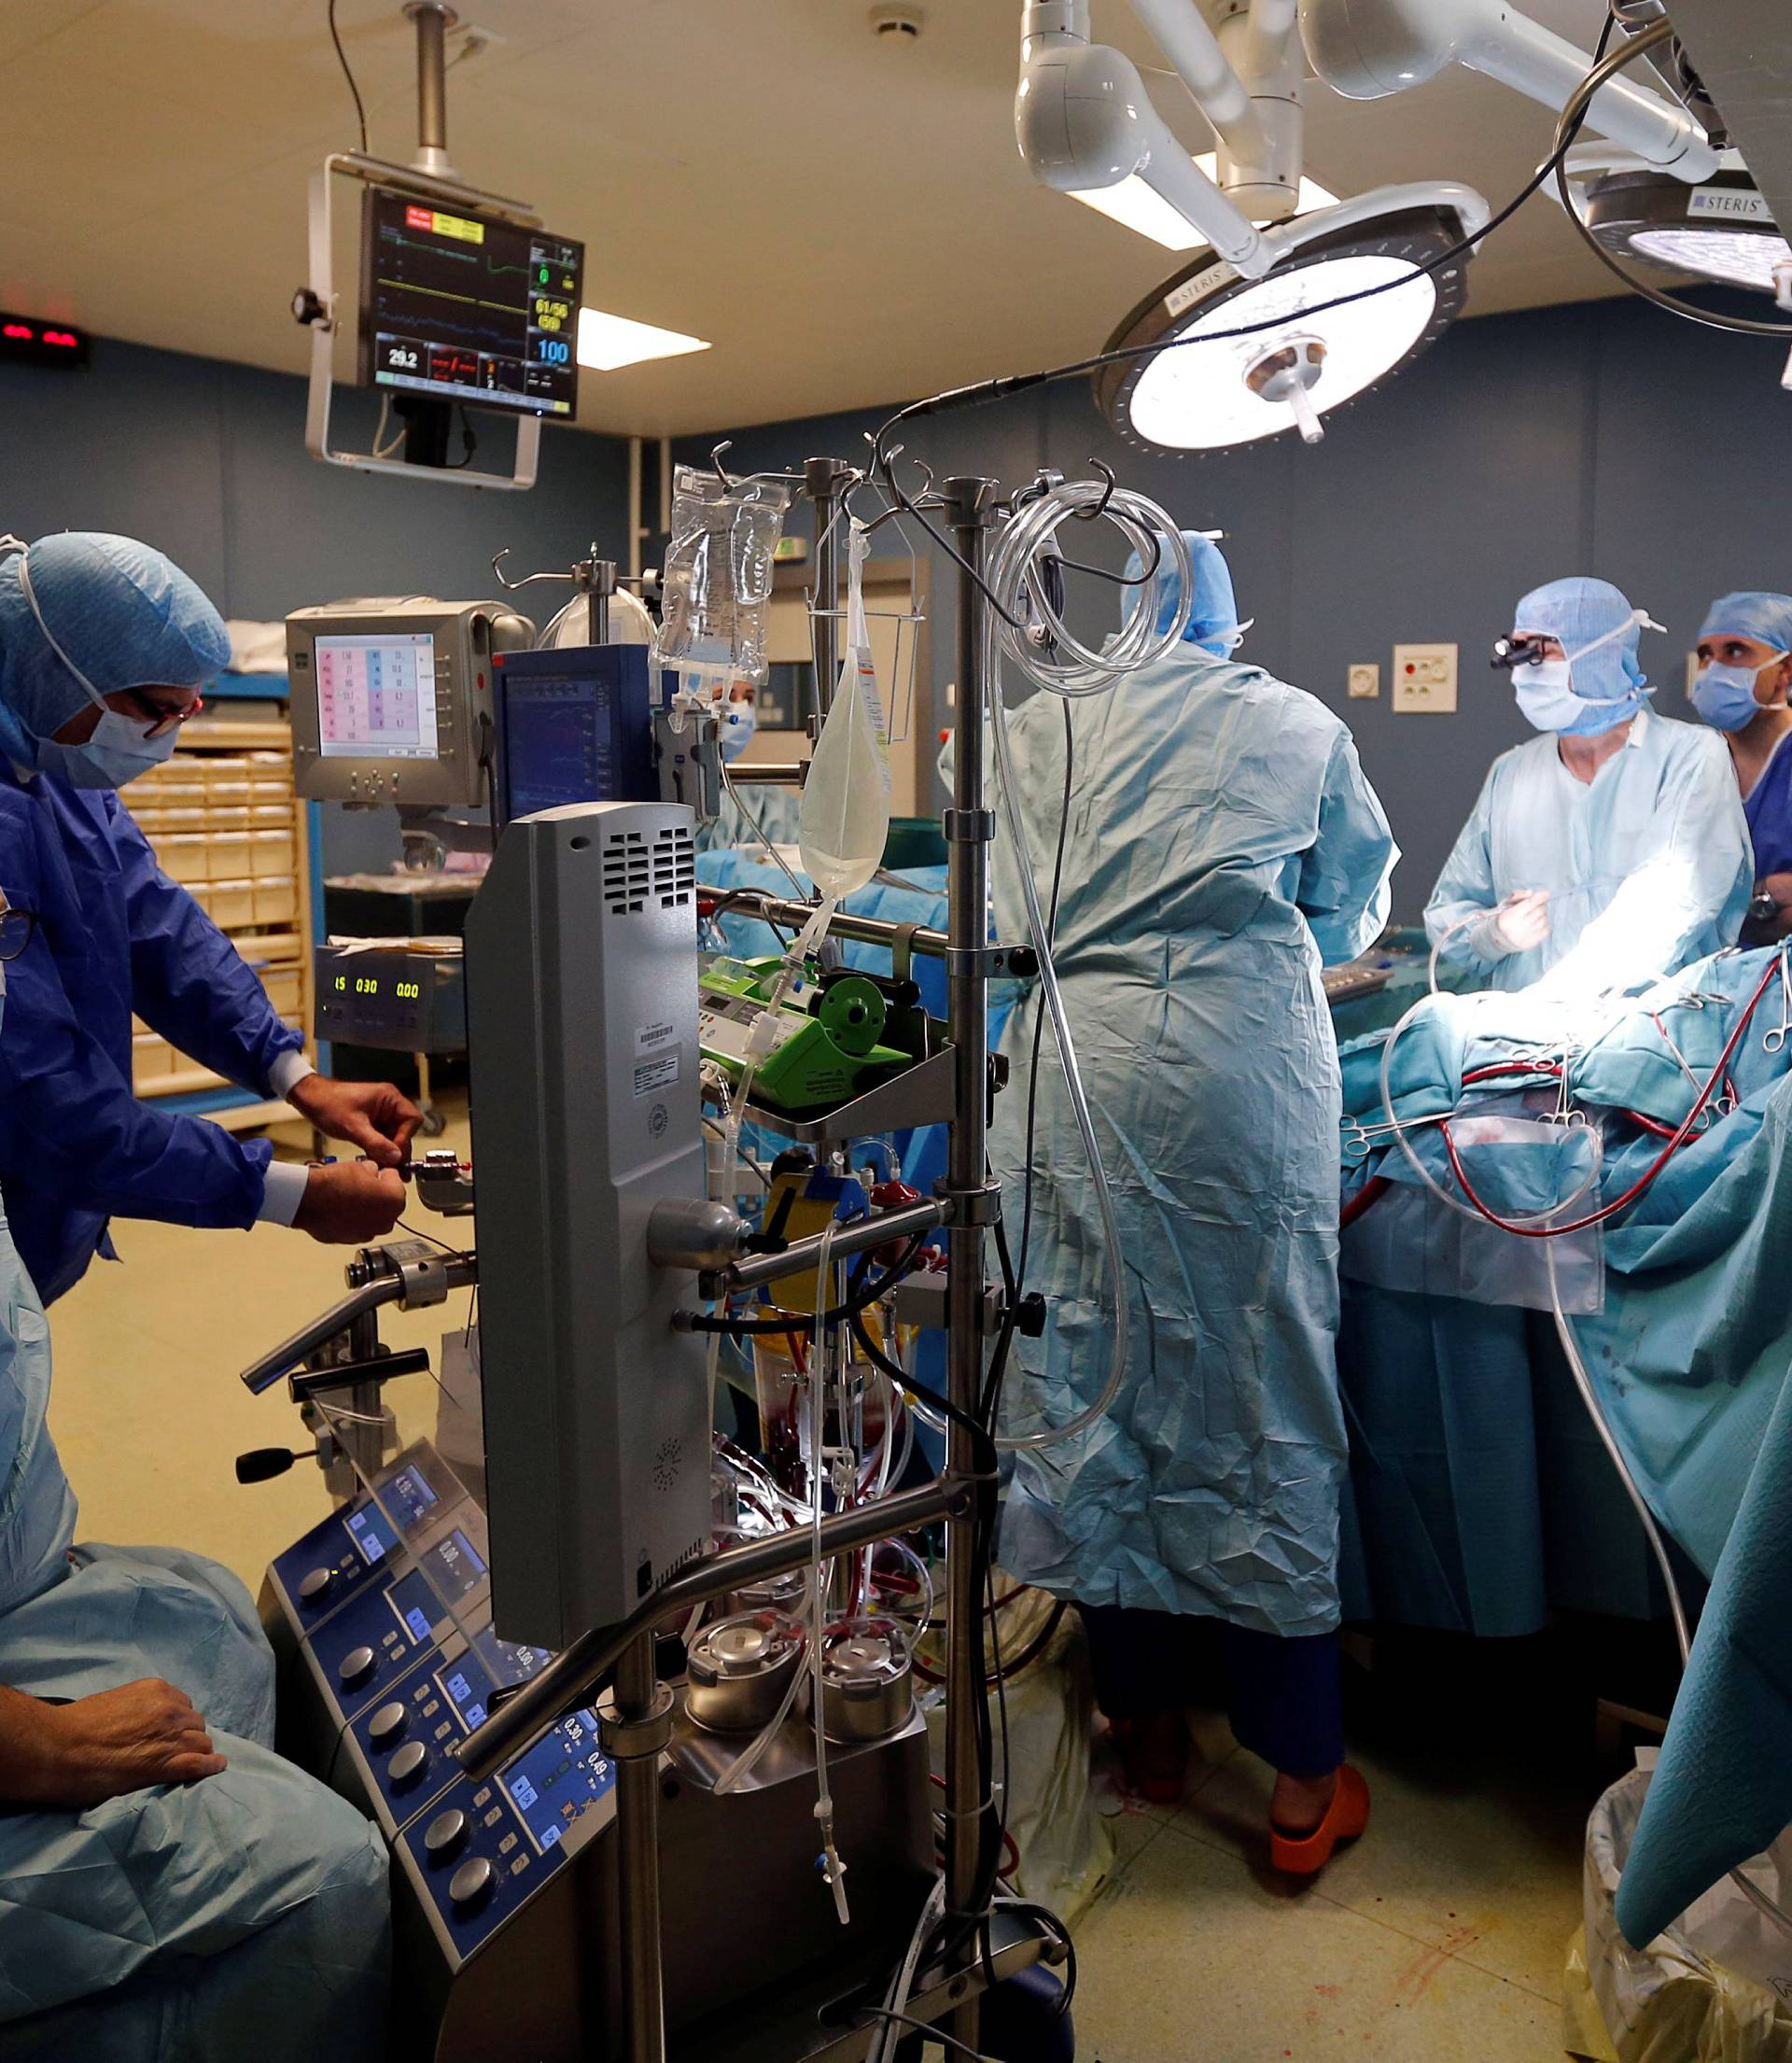 Medical team perform a heart surgery in an operating room at the Saint-Augustin clinic in Bordeaux